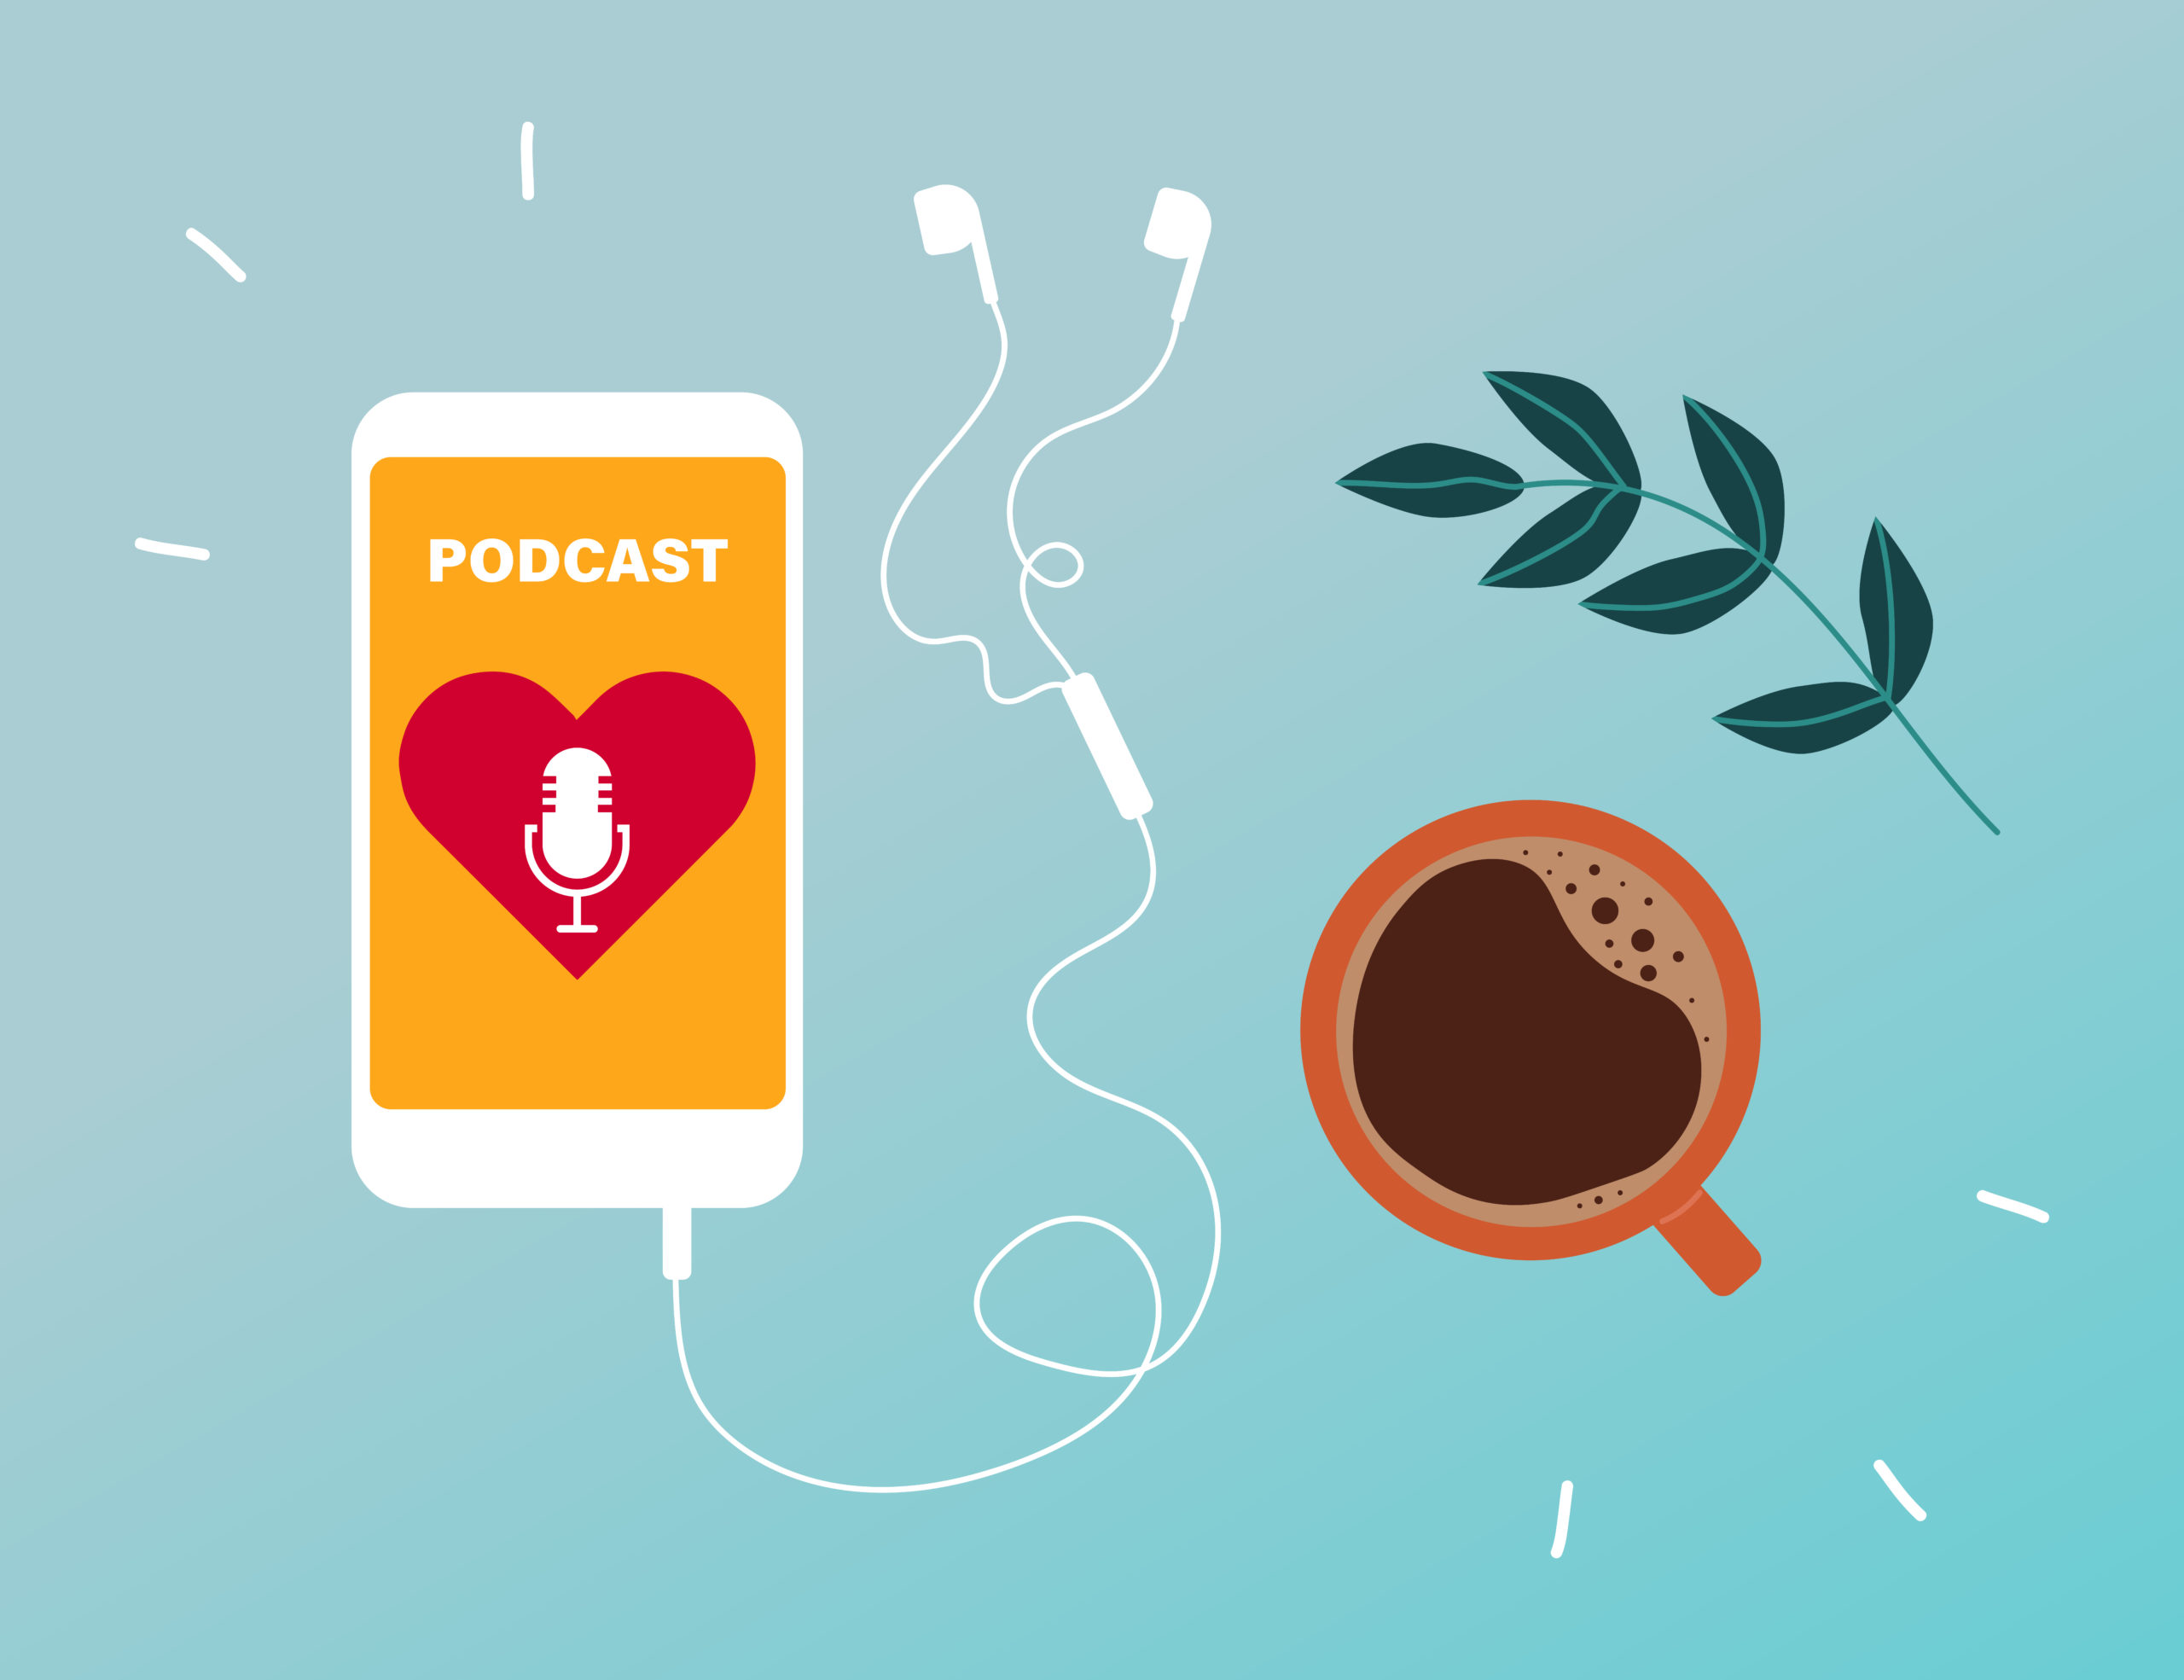 6 Podcasts We Loved in 2020 - Illustration of a coffee cup, iphone, and headphones